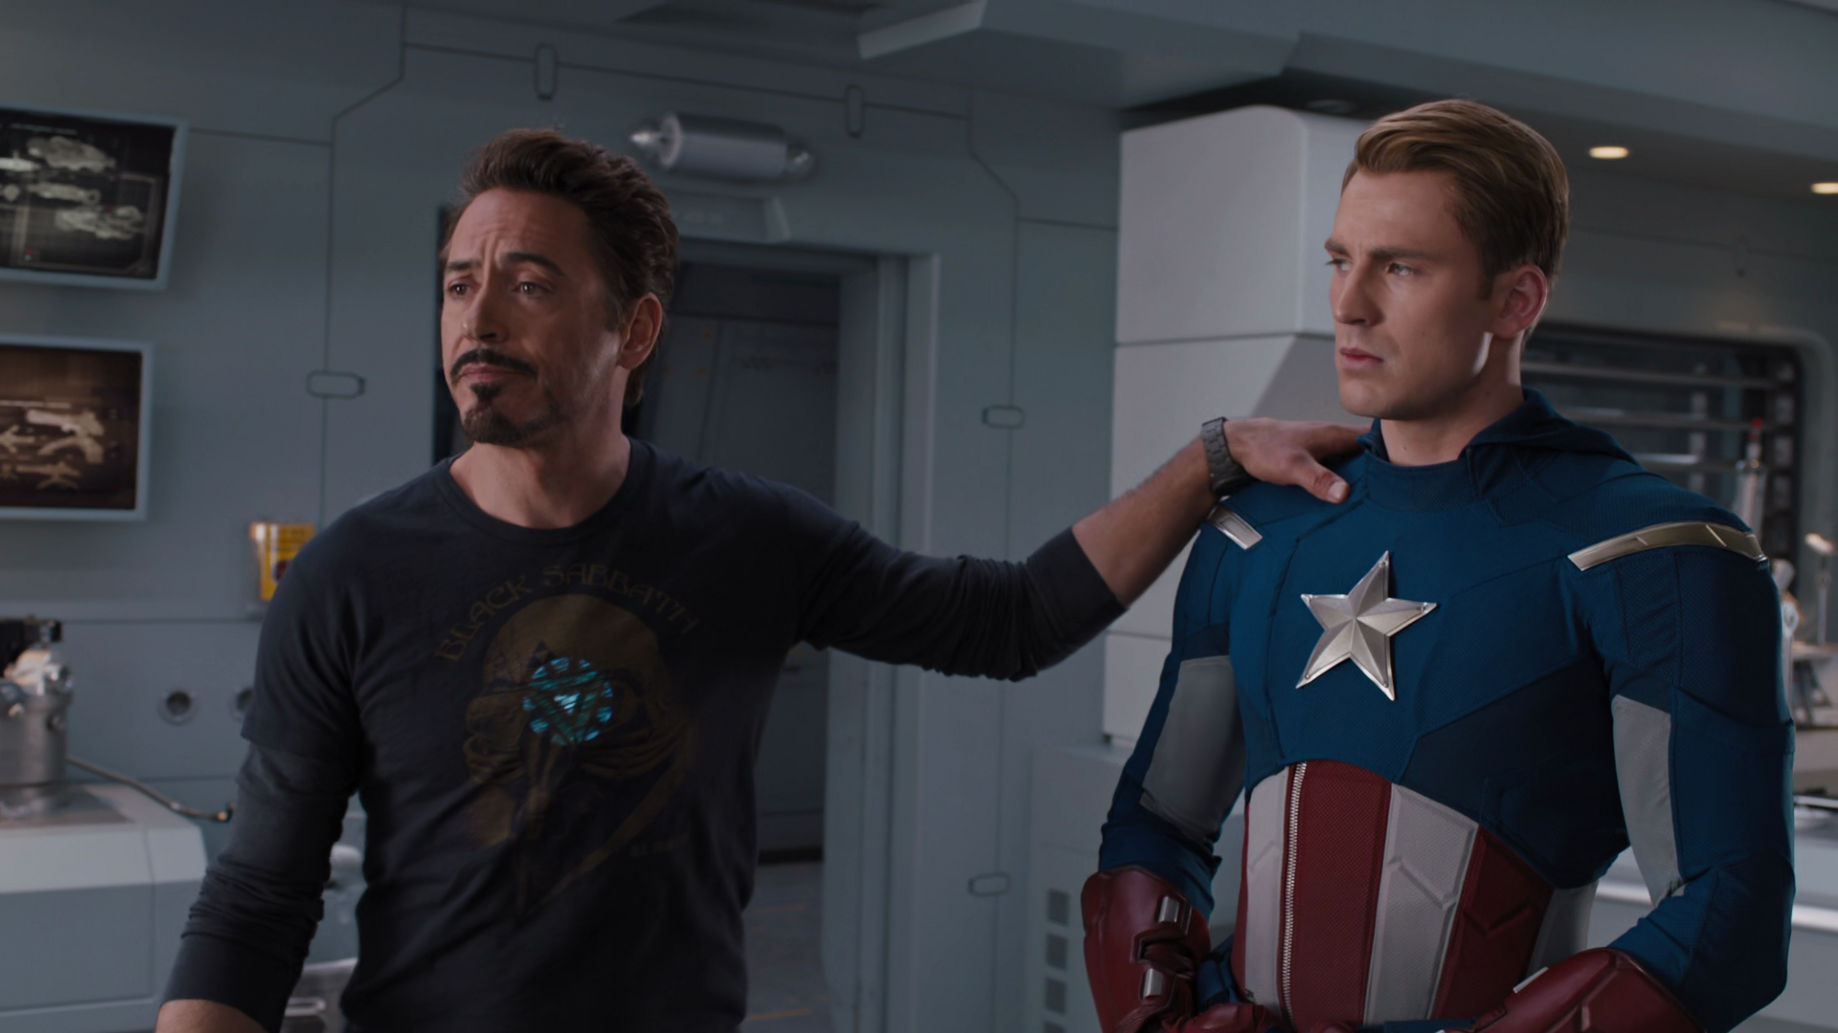 Tony Stark's legacy also includes taunting his teammates.